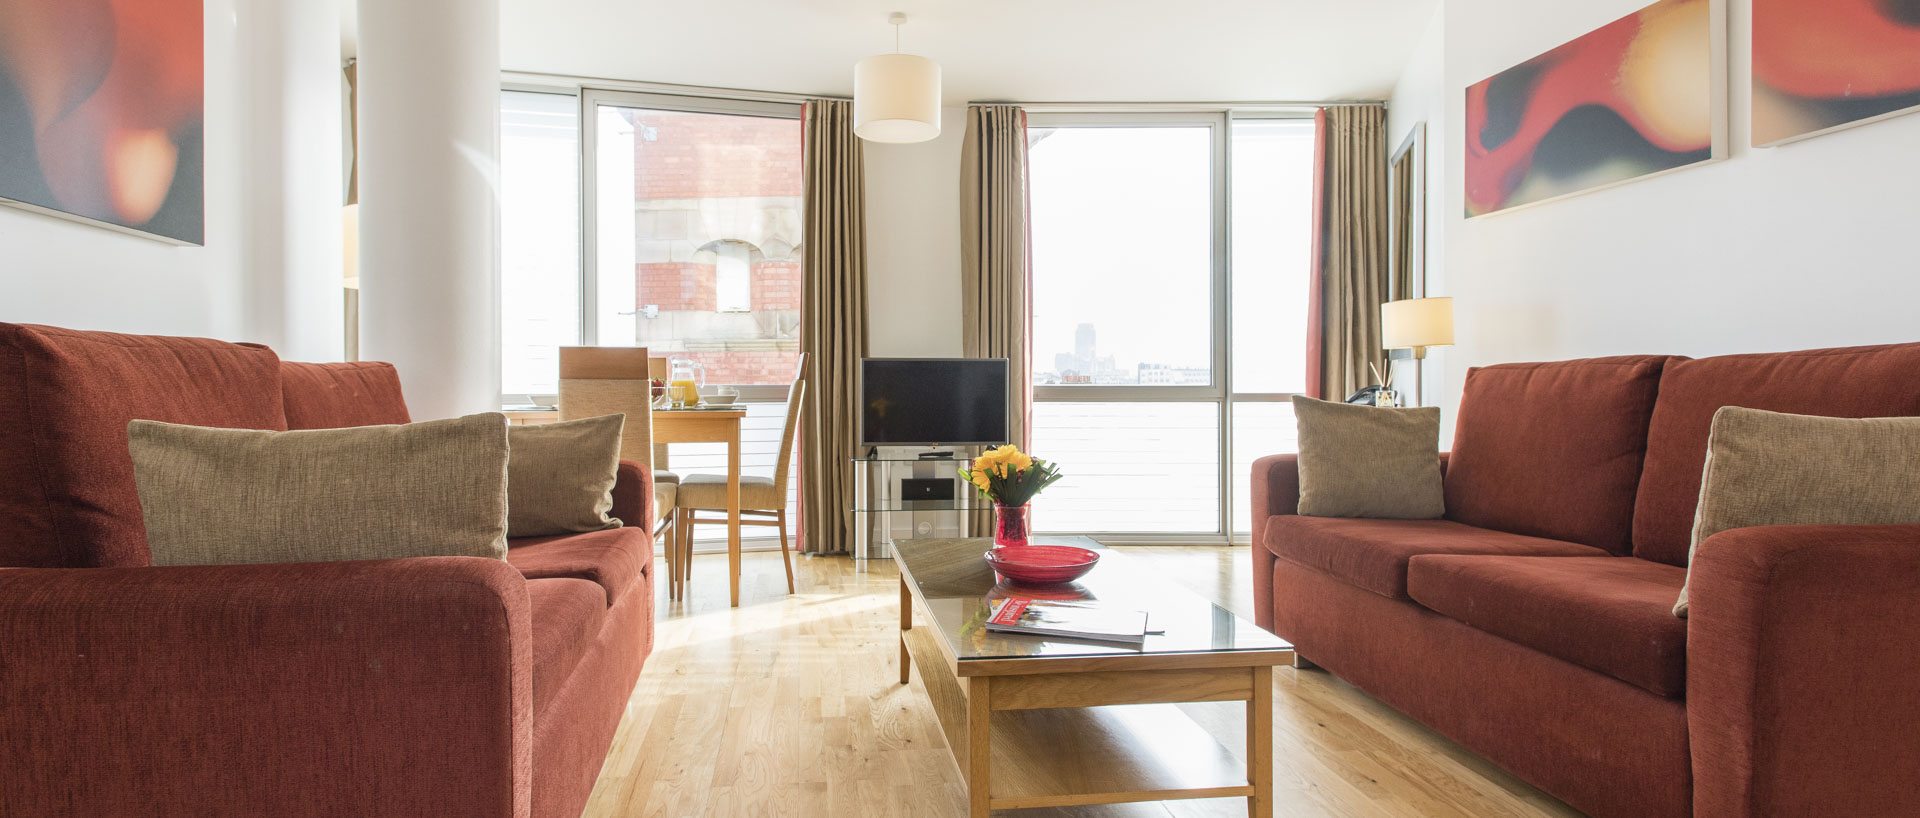 PREMIER SUITES Liverpool 2 bedroom